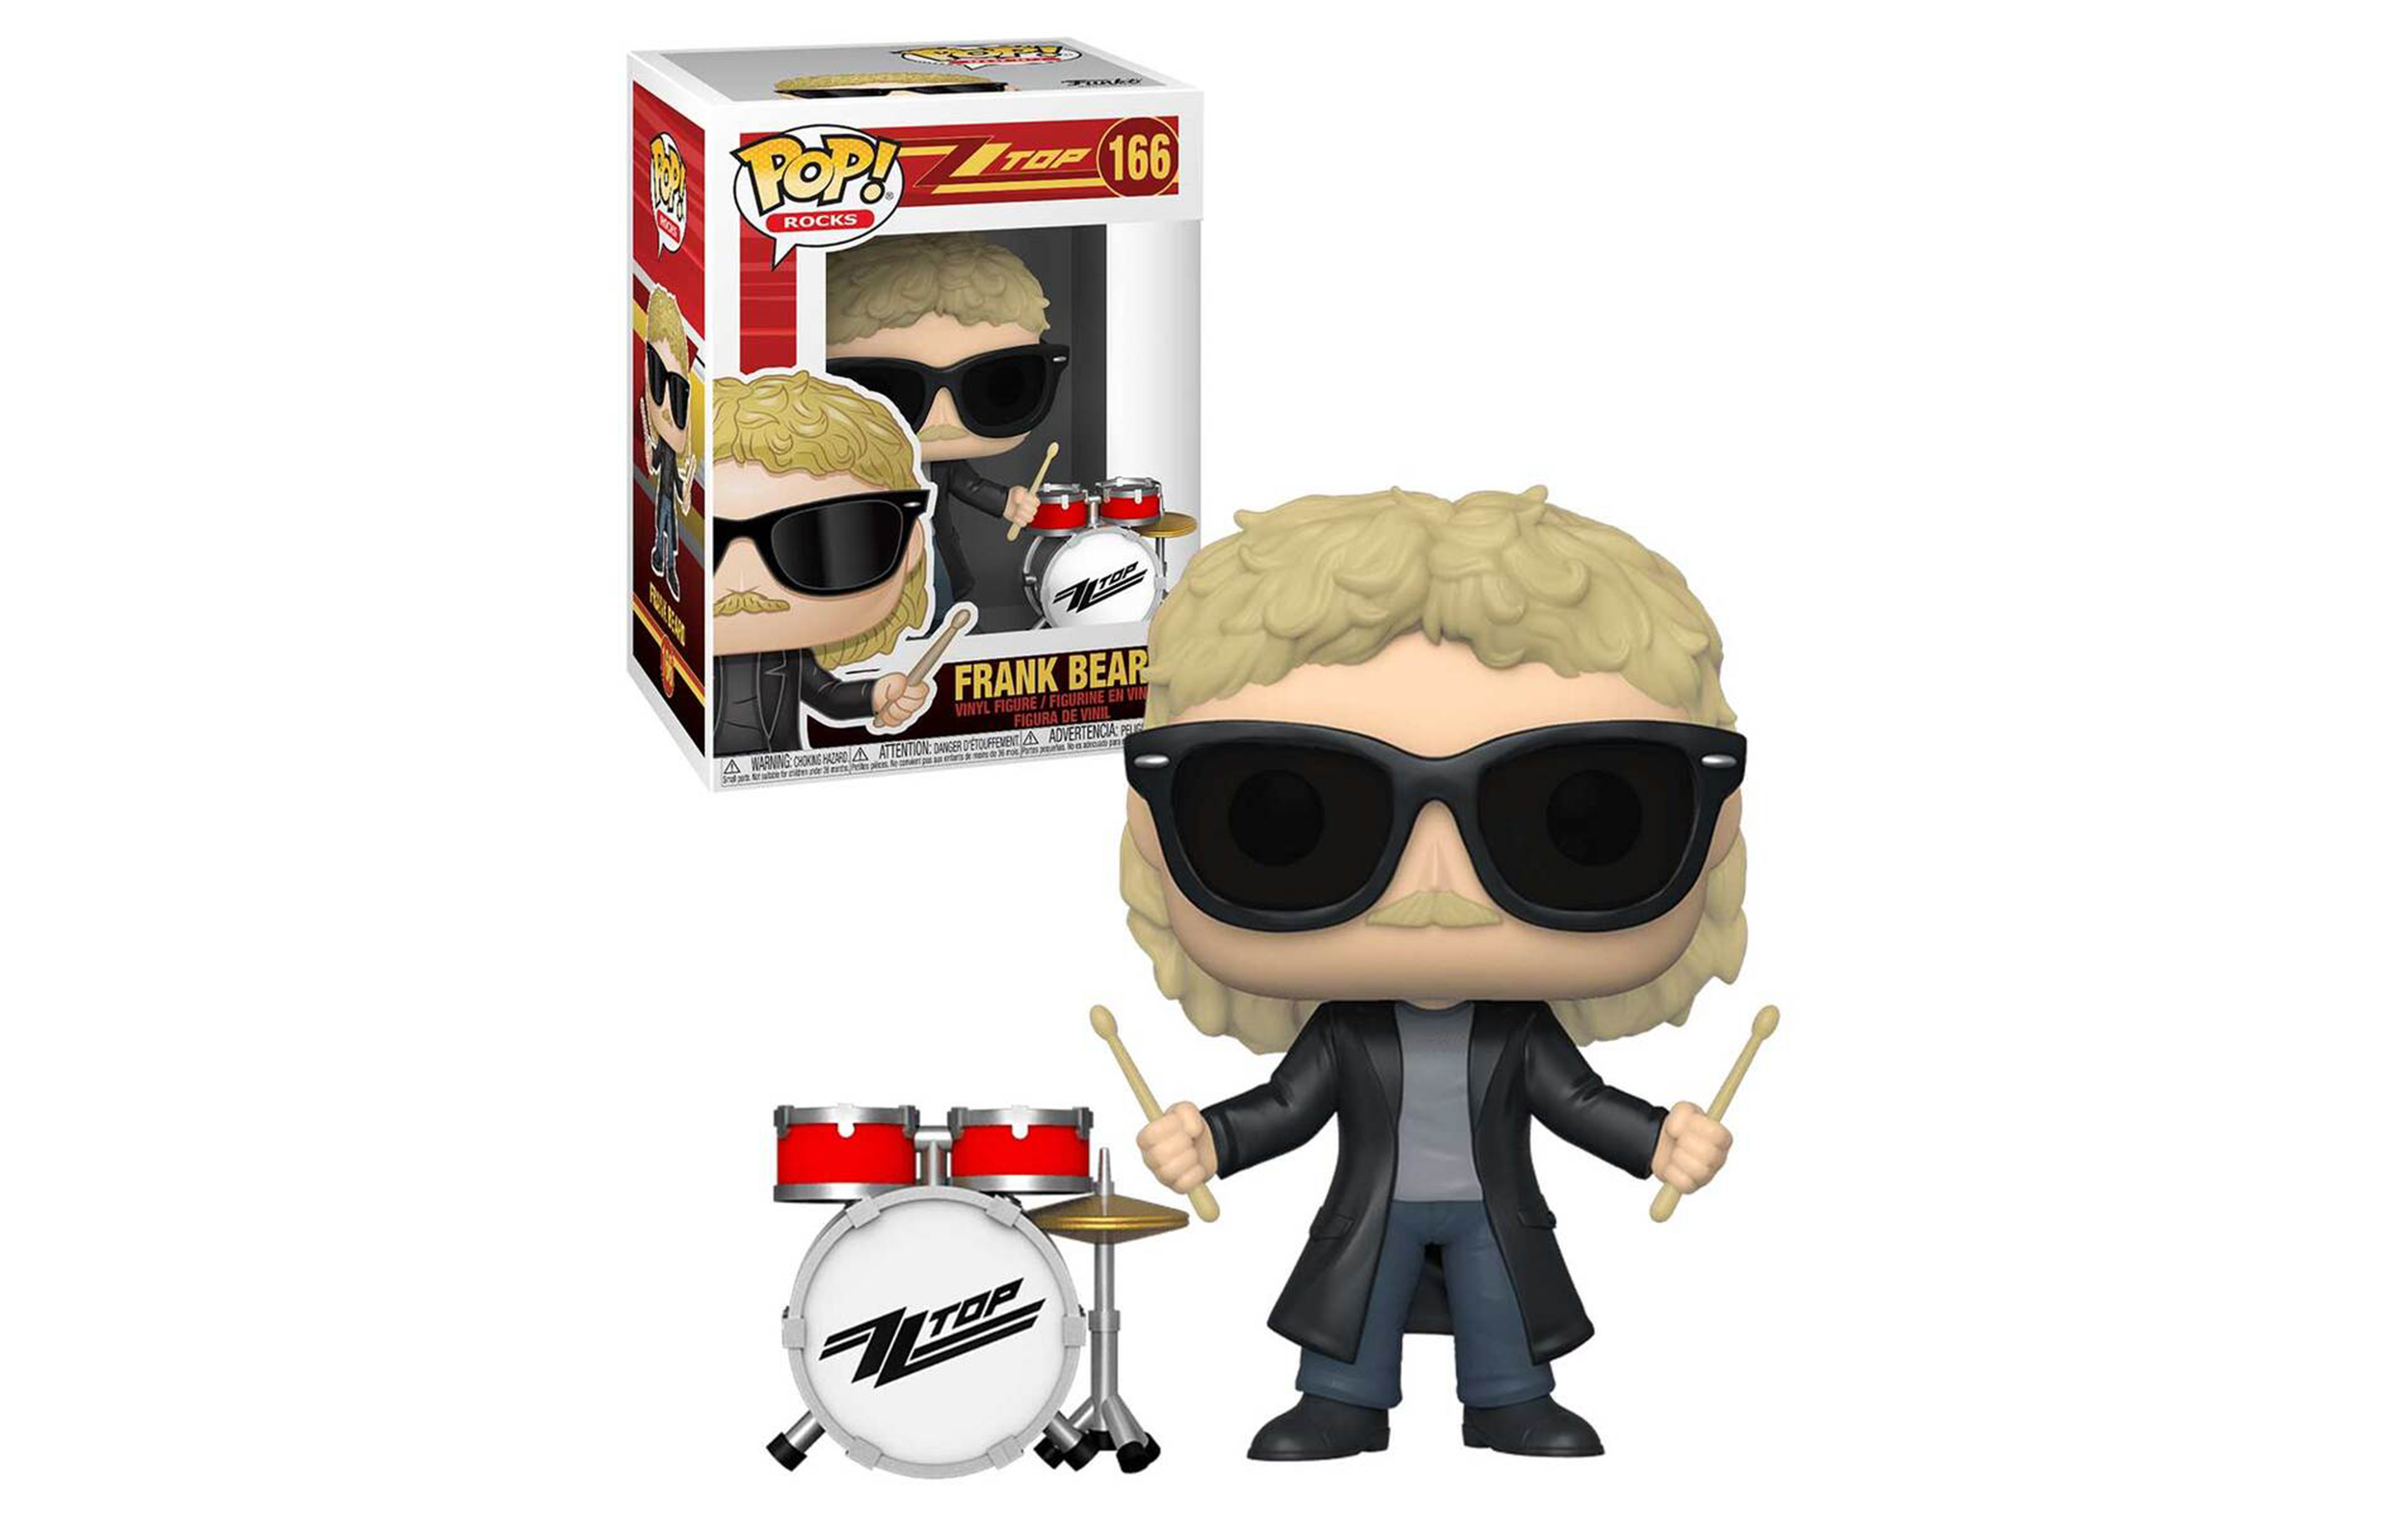 ZZ Top Frank Beard 166 Funko POP Vinyl Figure